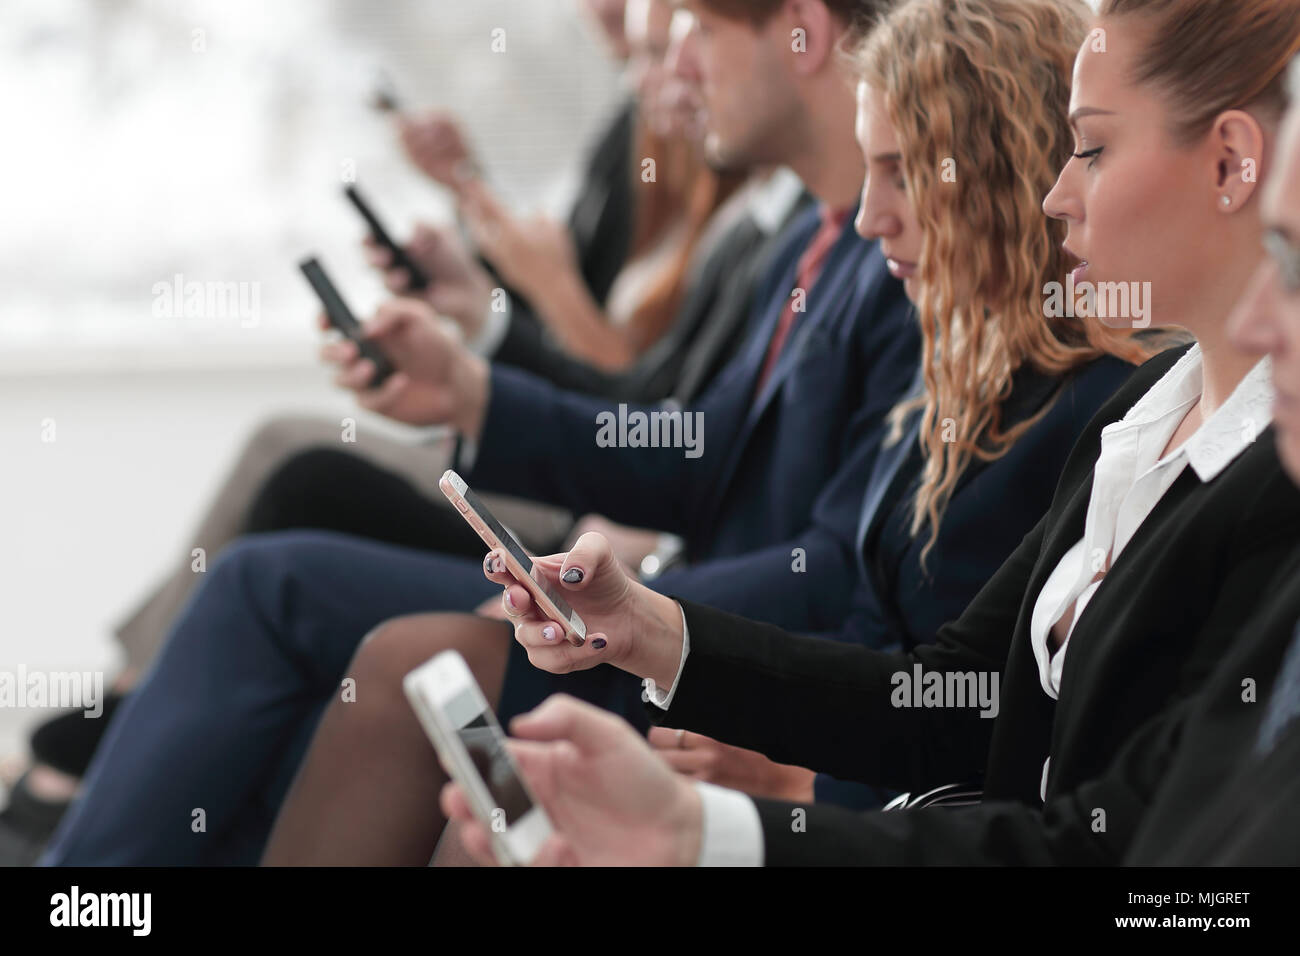 closeup of colleagues sitting at a business conference. - Stock Image